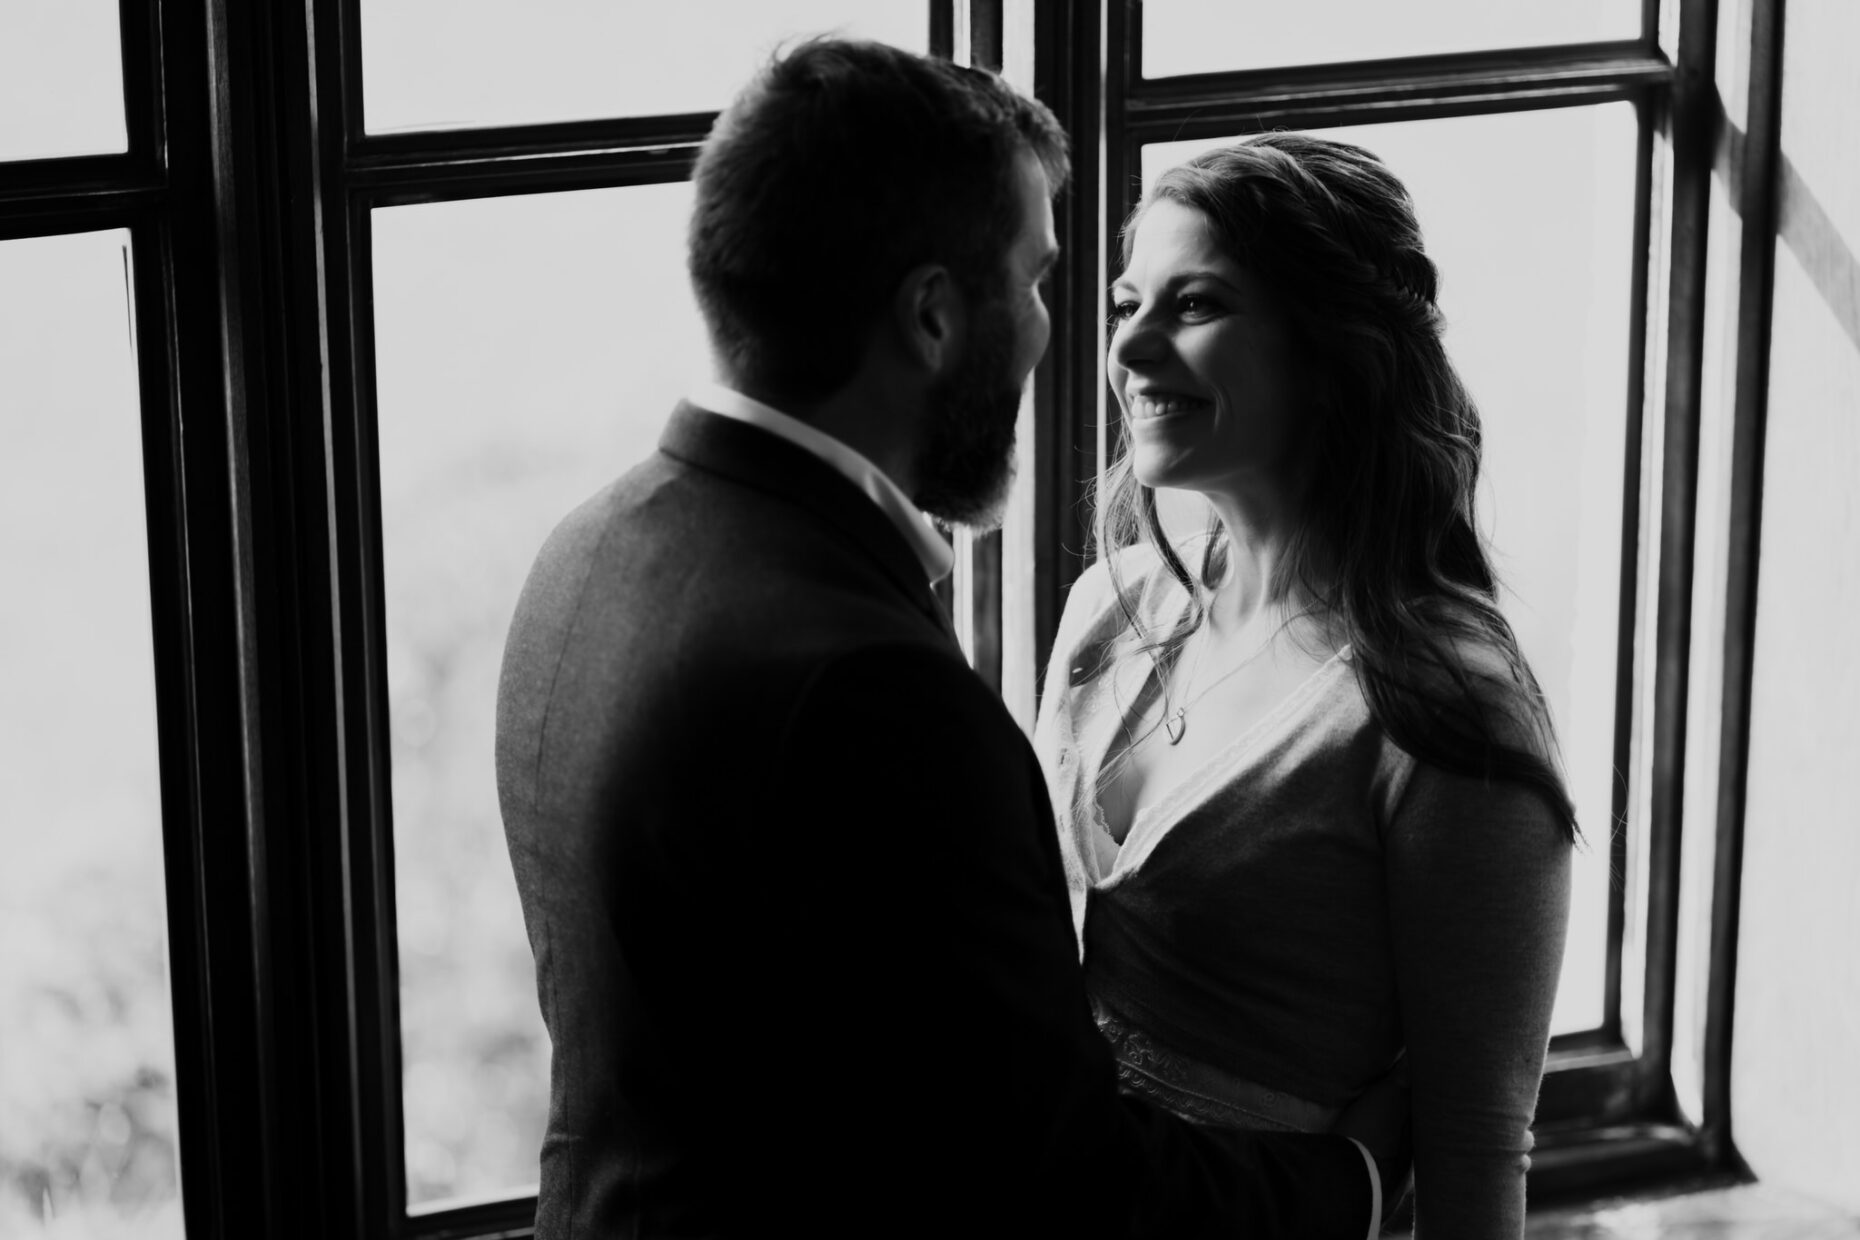 black and white image of couple in the window looking emotionally at one another